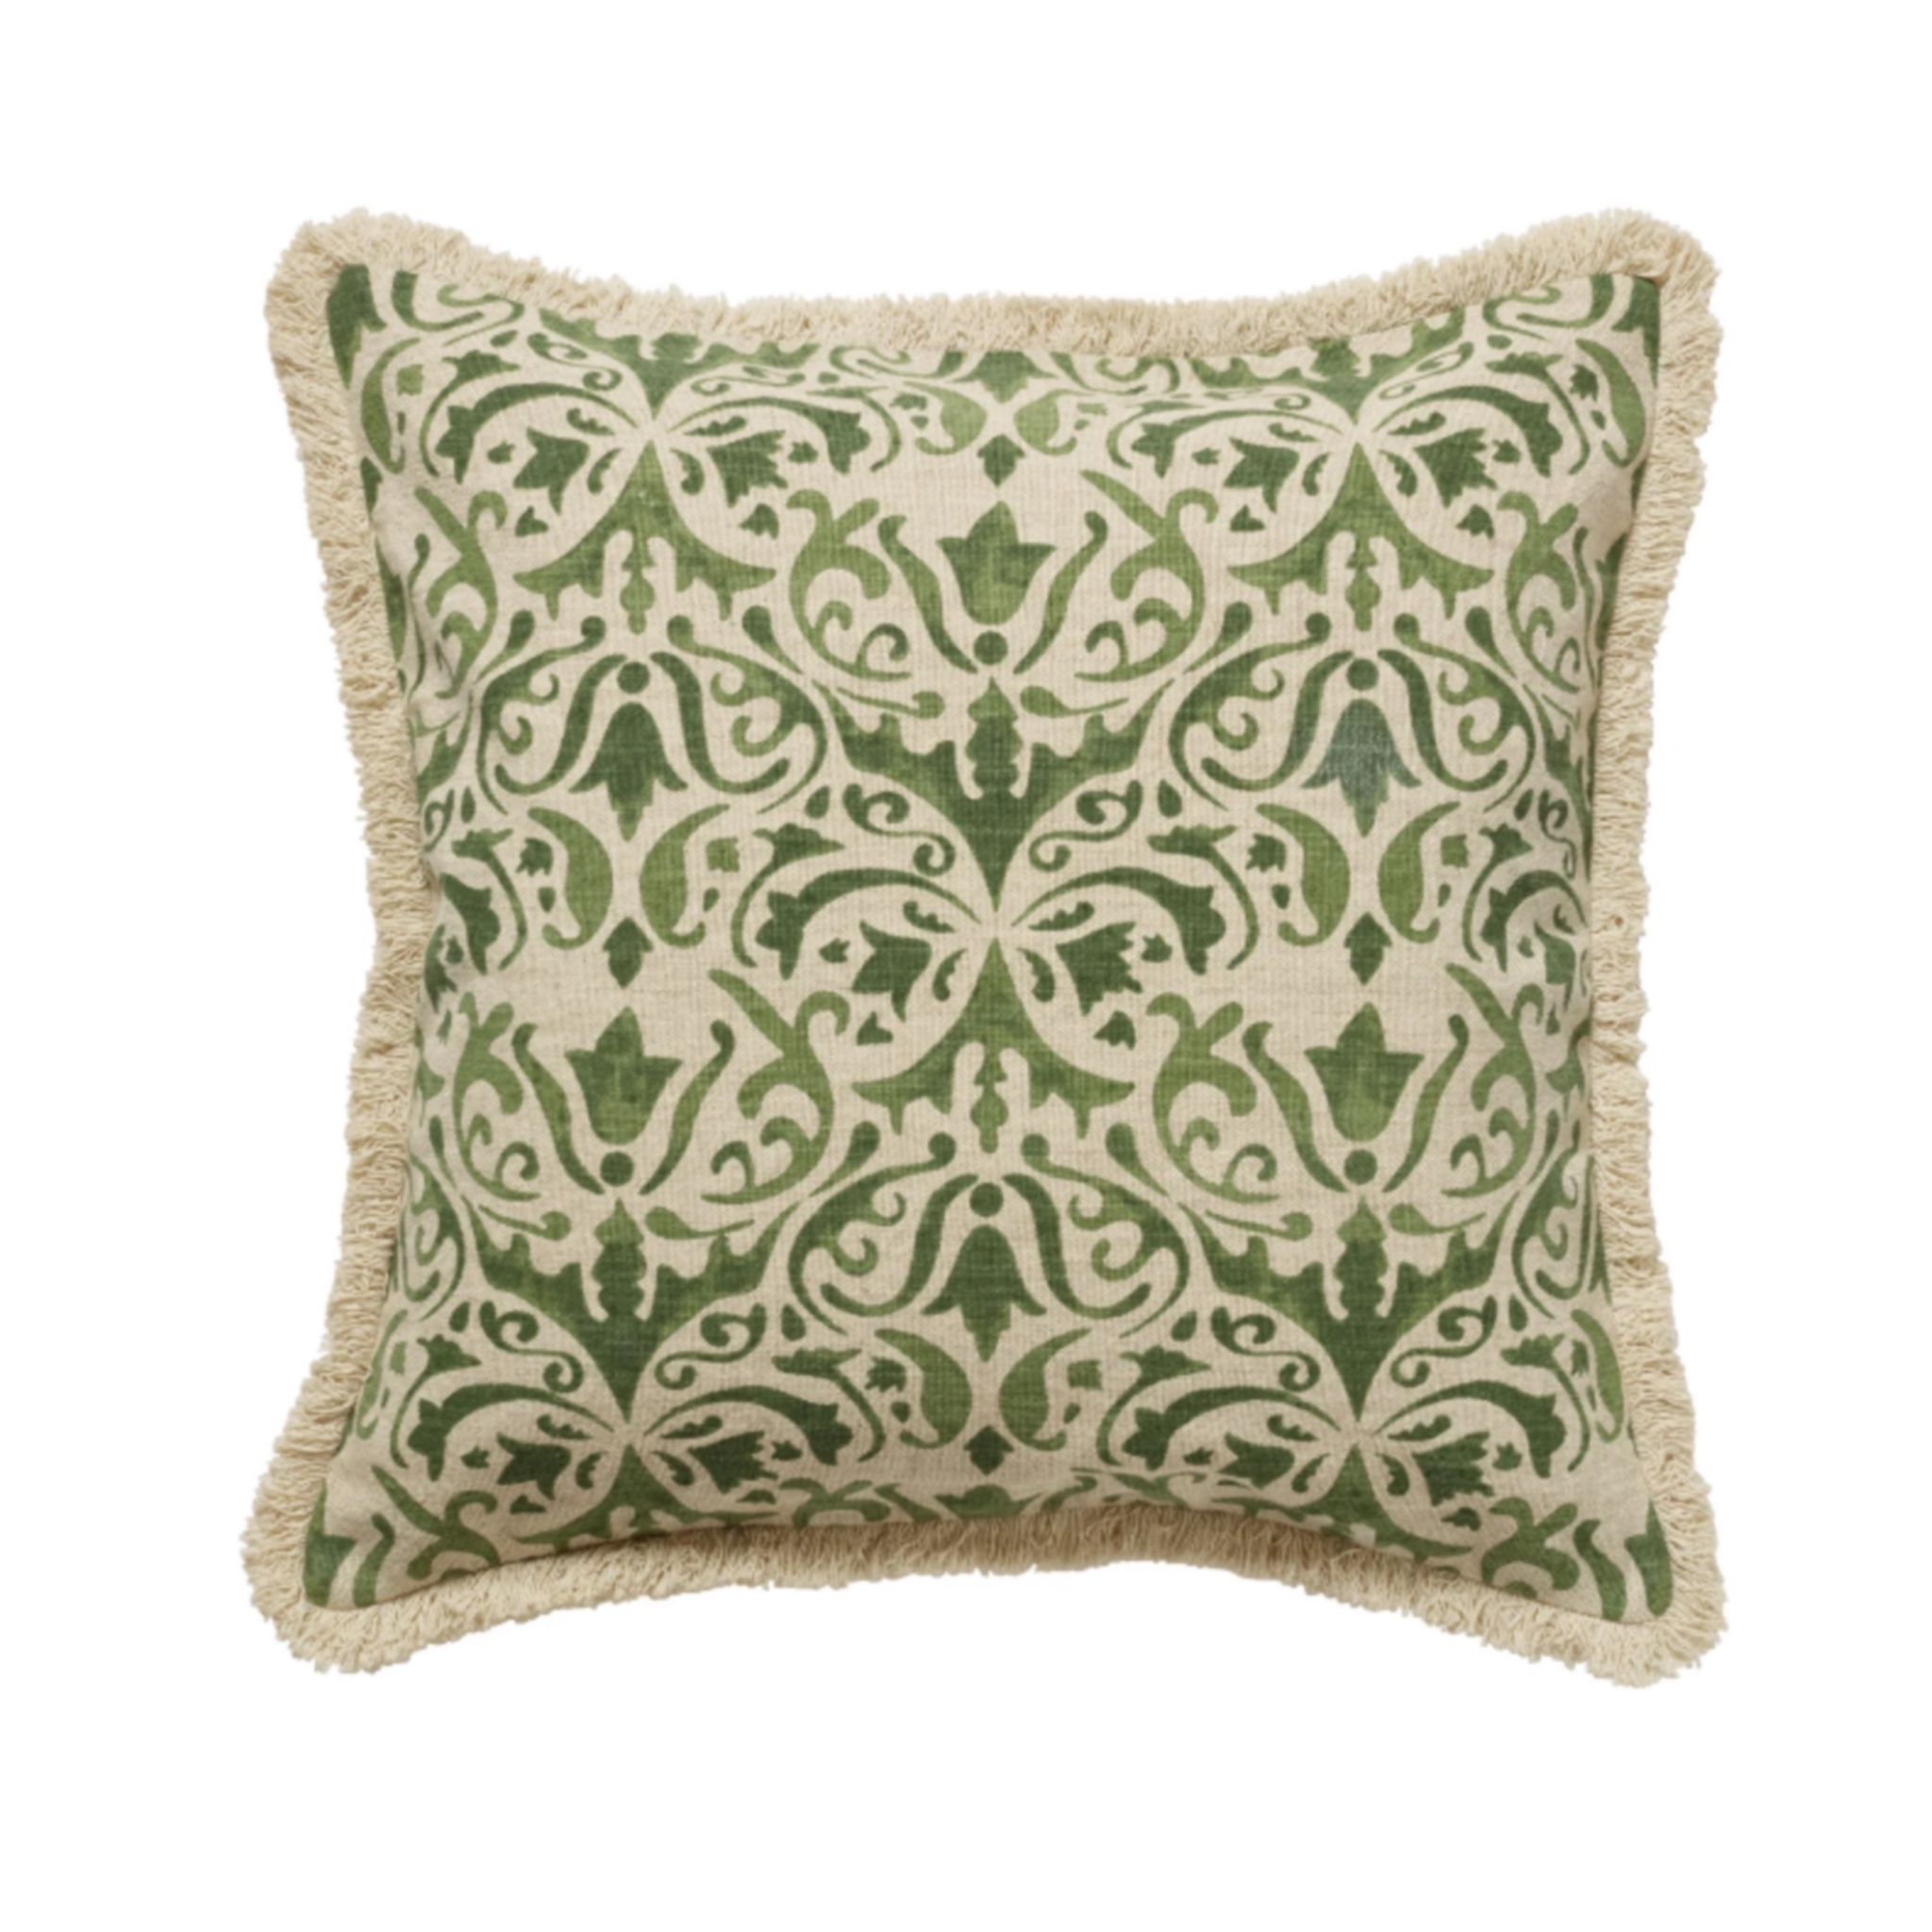 green patterned vintage style cushion with frills